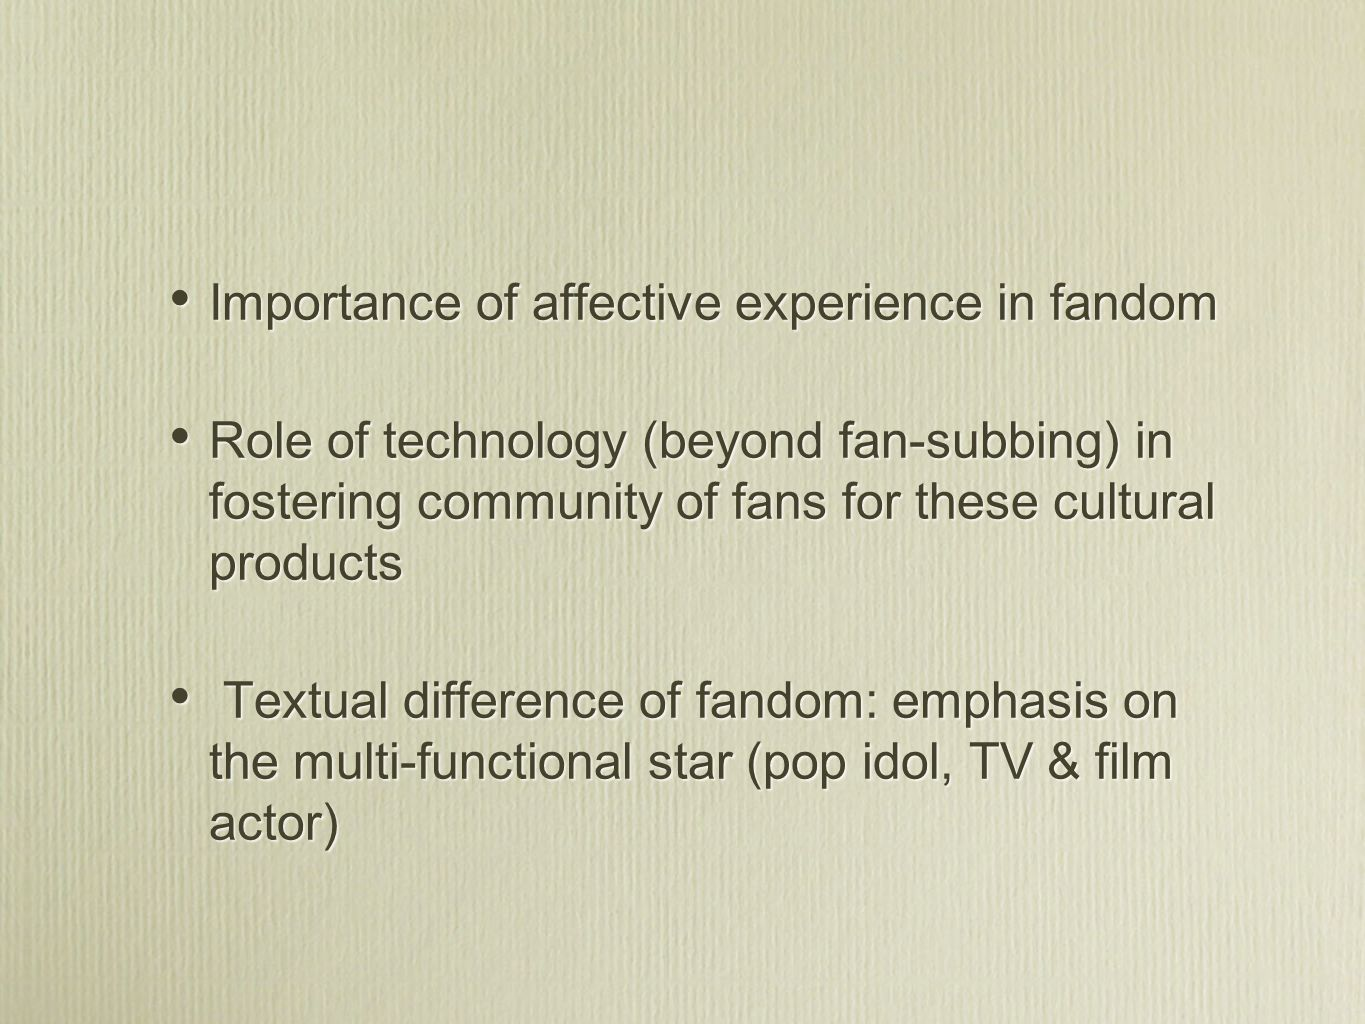 Importance of affective experience in fandom Role of technology (beyond fan-subbing) in fostering community of fans for these cultural products Textual difference of fandom: emphasis on the multi-functional star (pop idol, TV & film actor) Importance of affective experience in fandom Role of technology (beyond fan-subbing) in fostering community of fans for these cultural products Textual difference of fandom: emphasis on the multi-functional star (pop idol, TV & film actor)